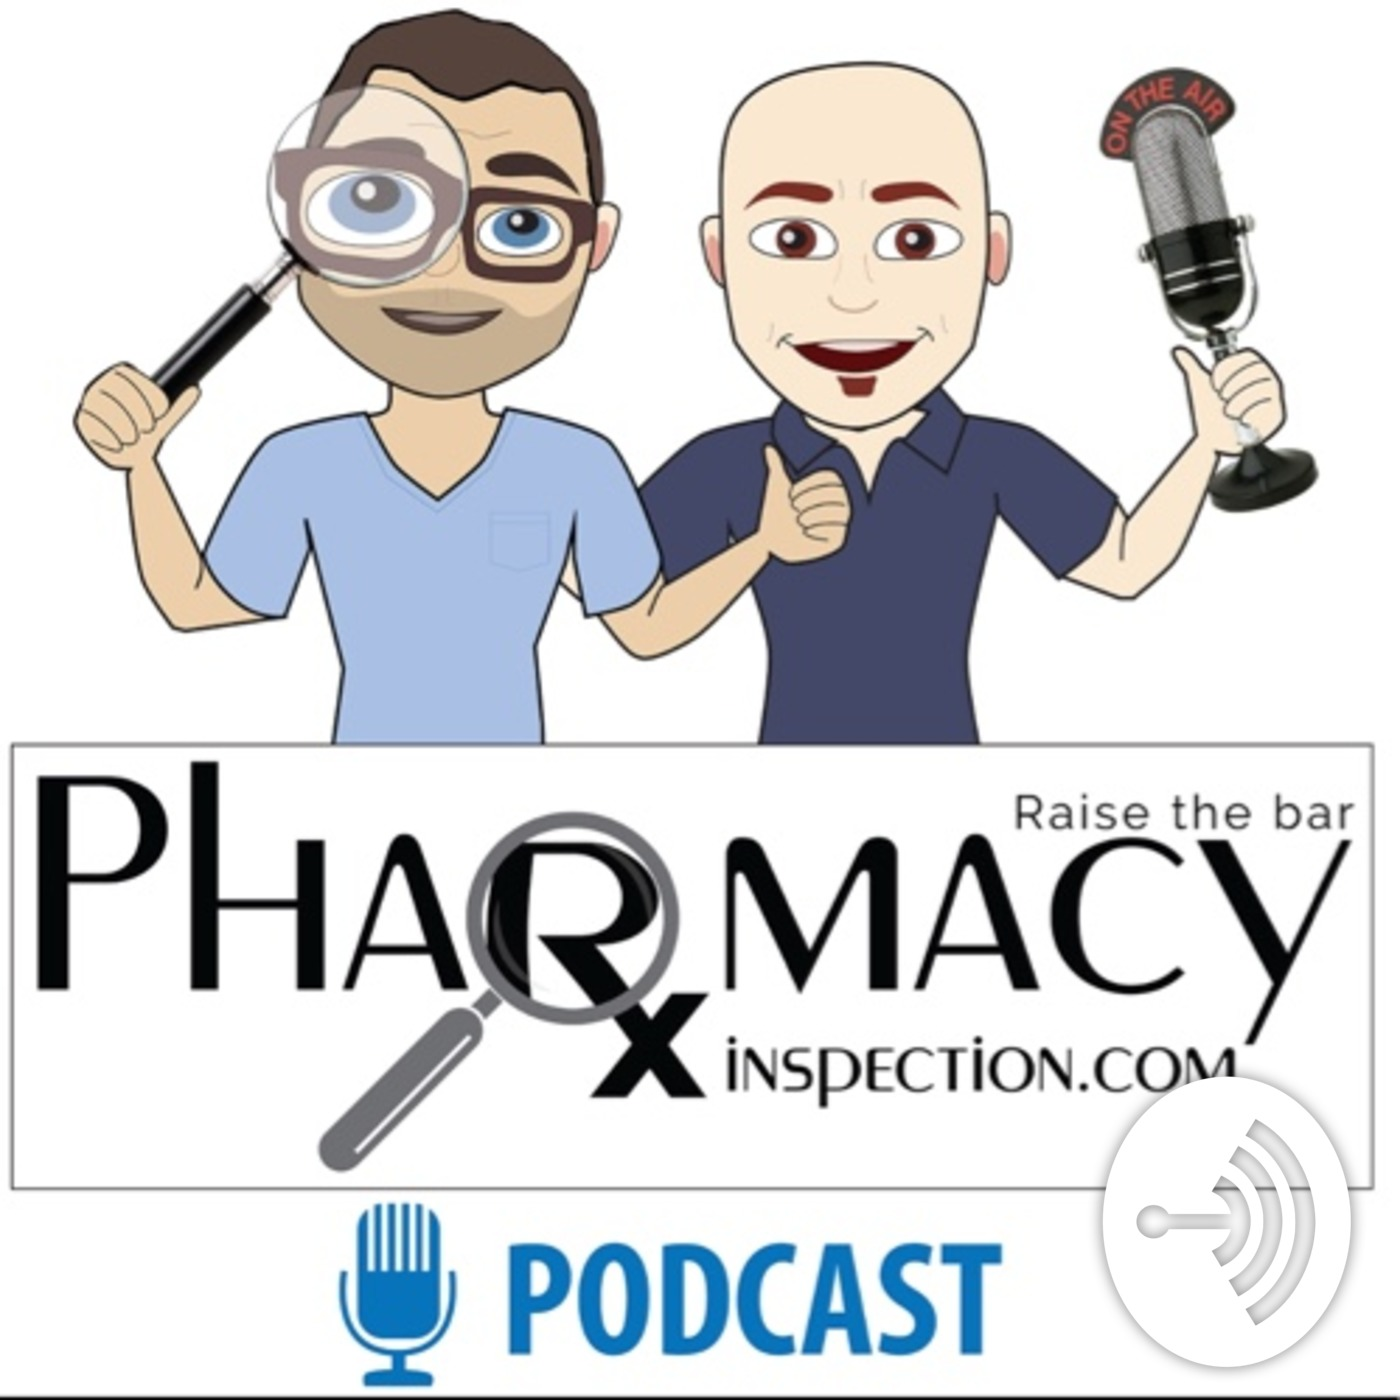 Pharmacy Inspection Podcast Episode 15 - Bill Fixler Part 2